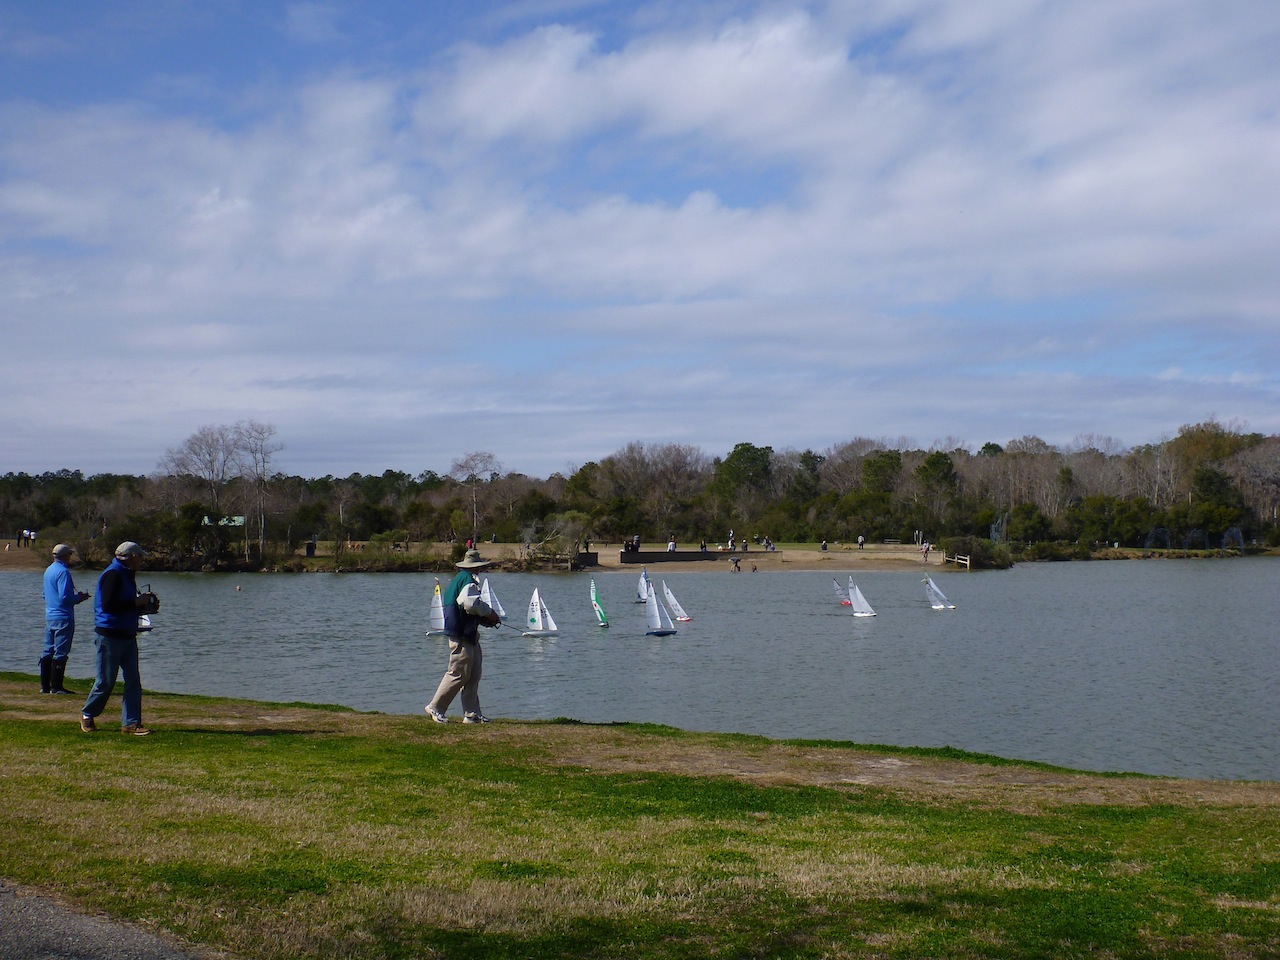 Remote Controlled Sailboats In The Lake At James Island County Park.